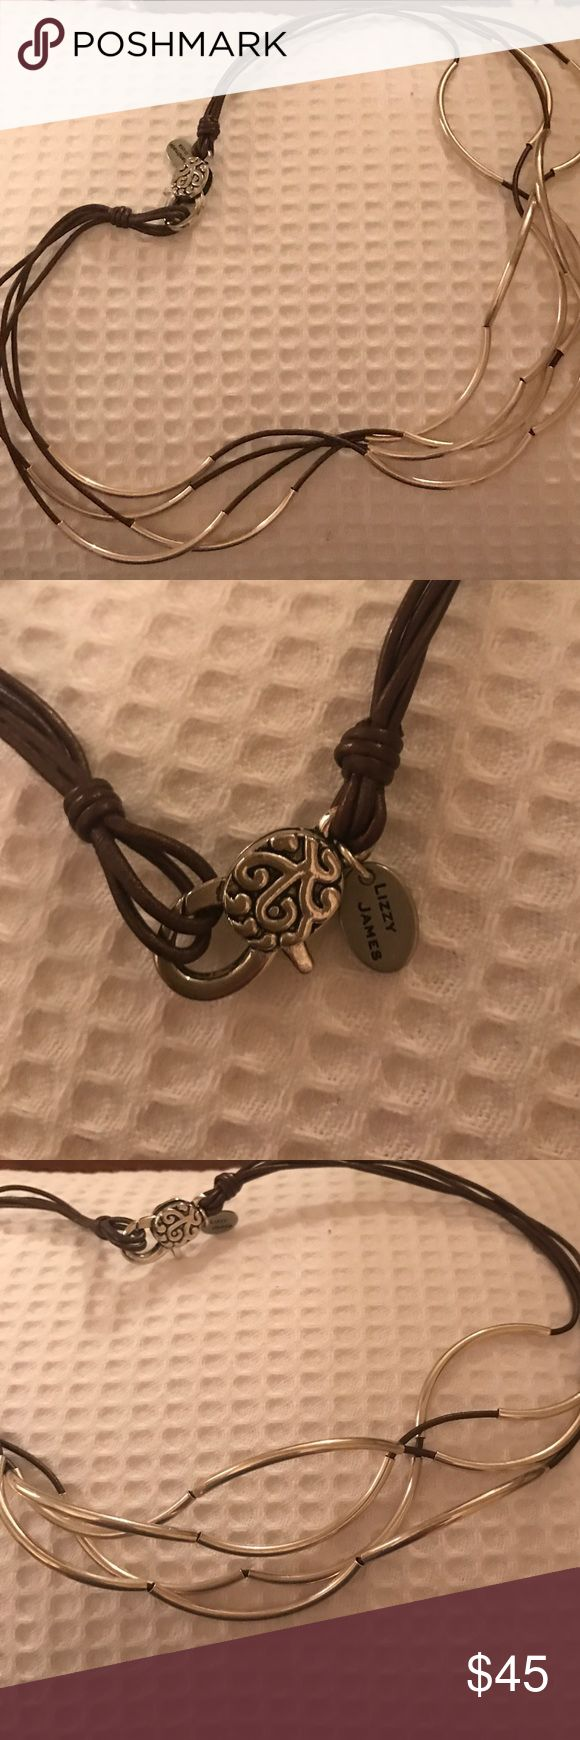 """Lizzy James Necklace / bracelet About 10"""" long when clasp is connected to base of necklace.  Can be looped around wrist to wear as bracelet as well. Cording is brown. Piece is flawless. Worn less than 5 times. lizzy james Jewelry Necklaces"""